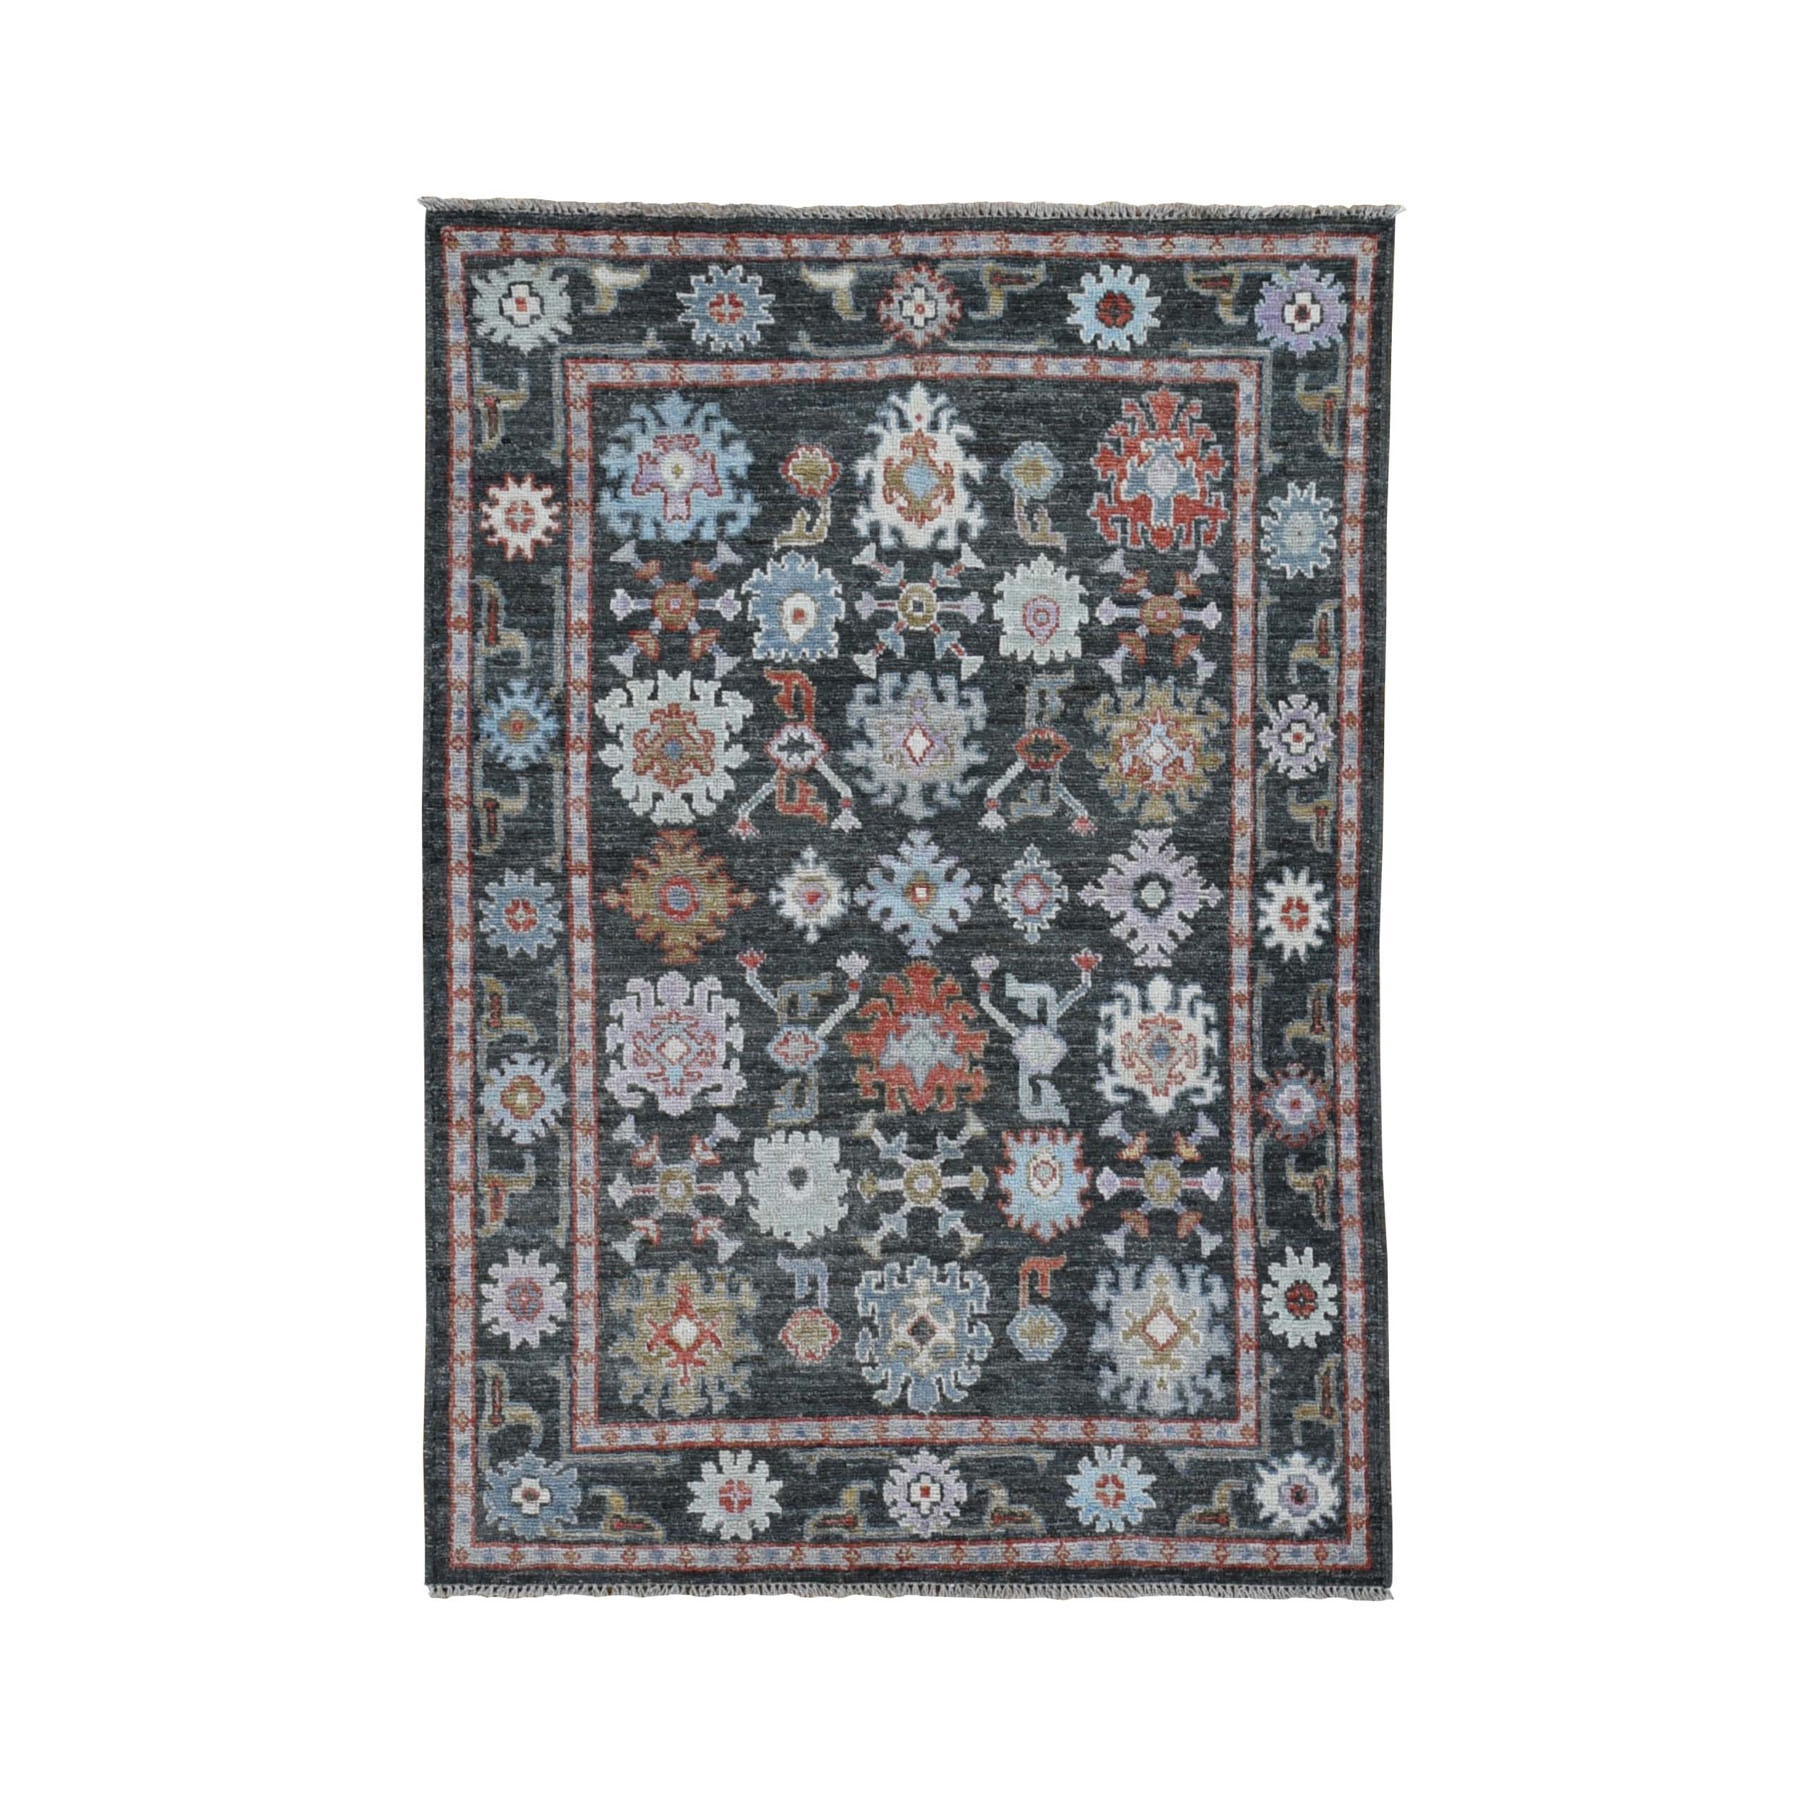 "4'x5'7"" Charcoal Black Angora Oushak With Soft Velvety Wool Hand Woven Oriental Rug"